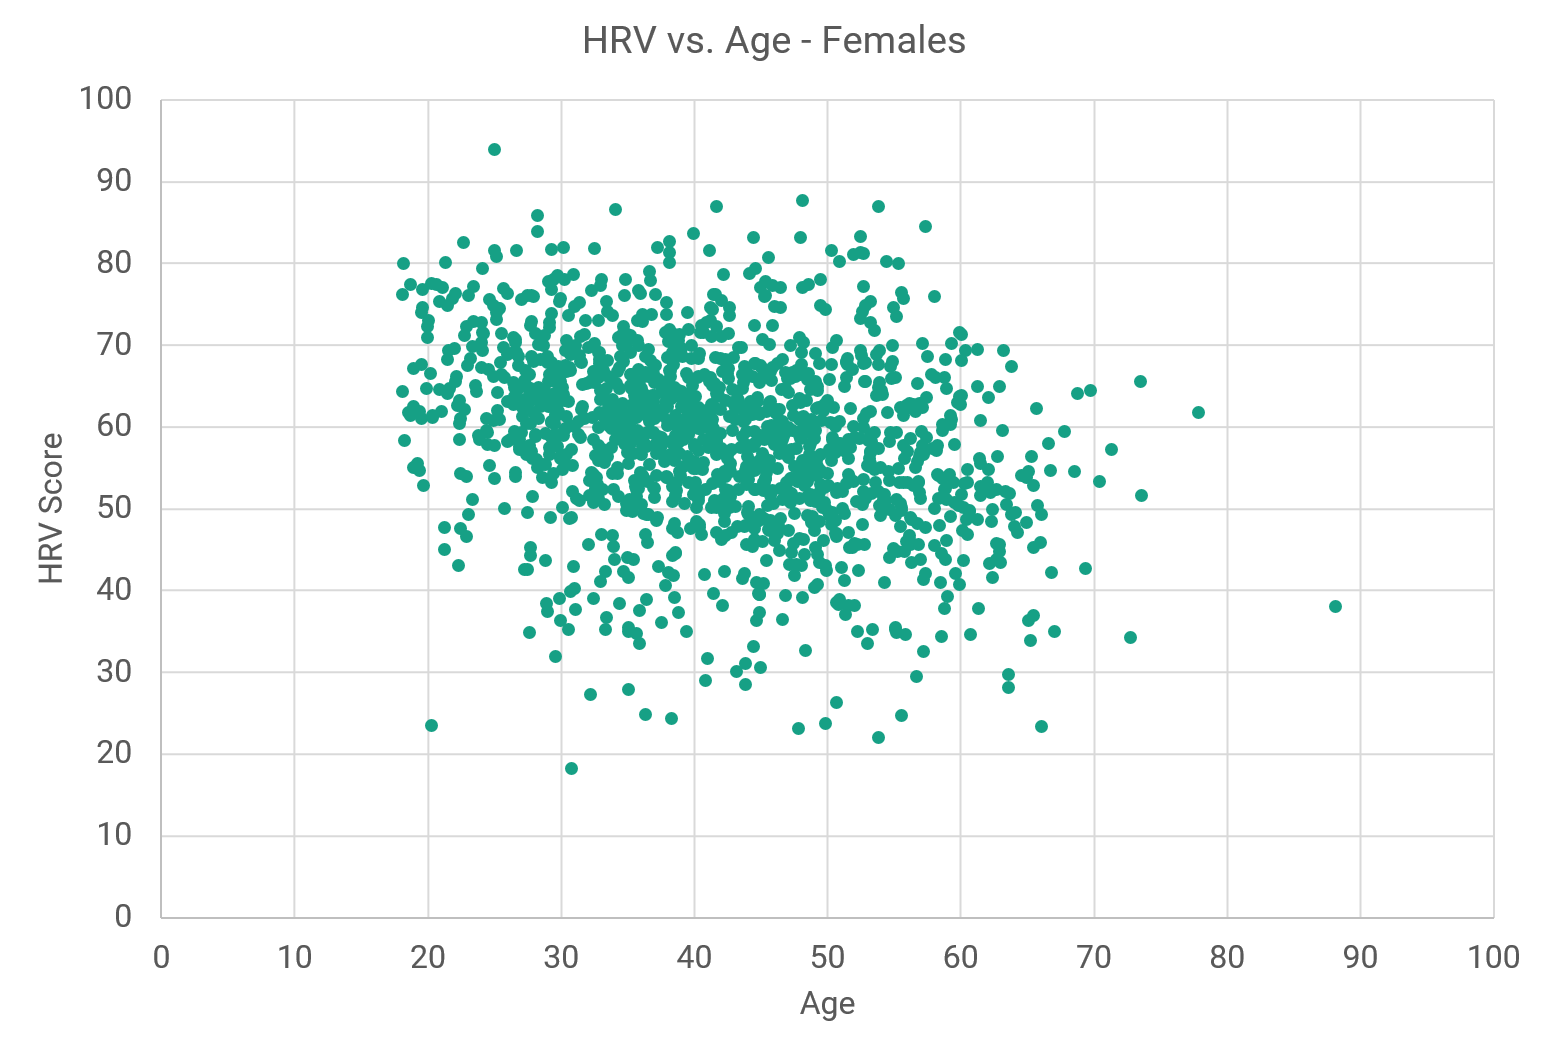 Normative elite hrv scores by age and gender elite hrv females agehrvscatterpng nvjuhfo Image collections